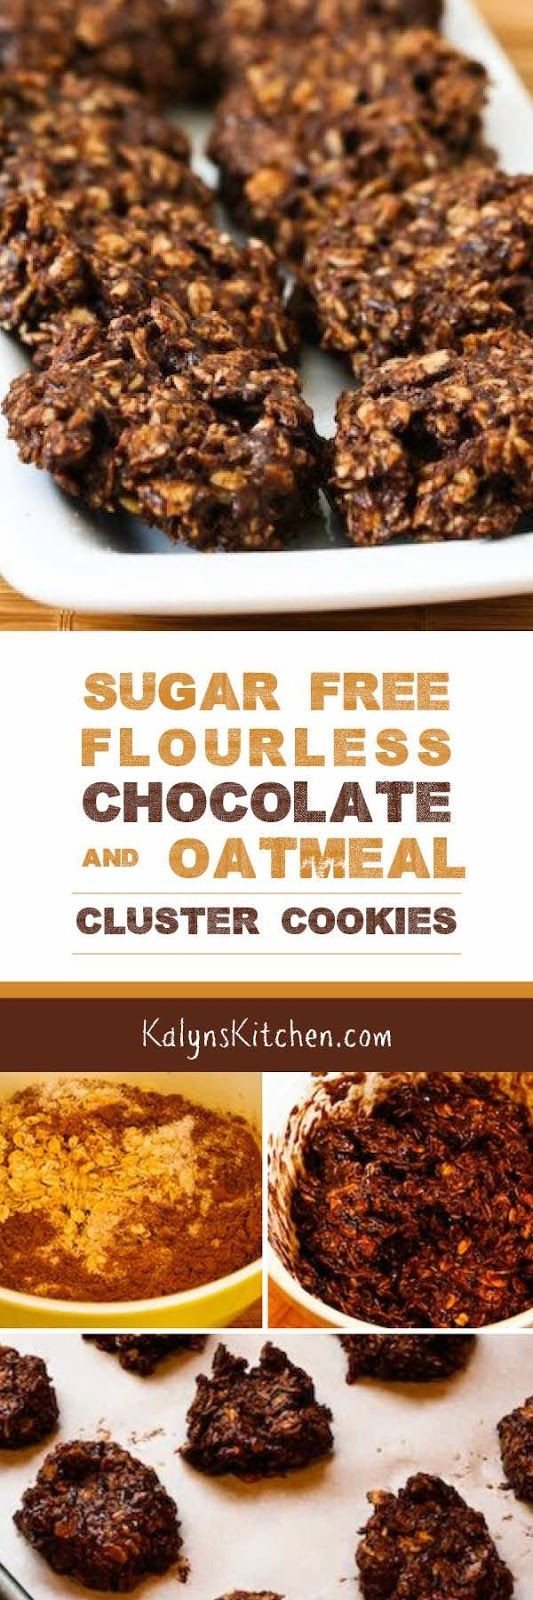 Sugar-Free and Flourless Chocolate and Oatmeal Cluster Cookies found ...